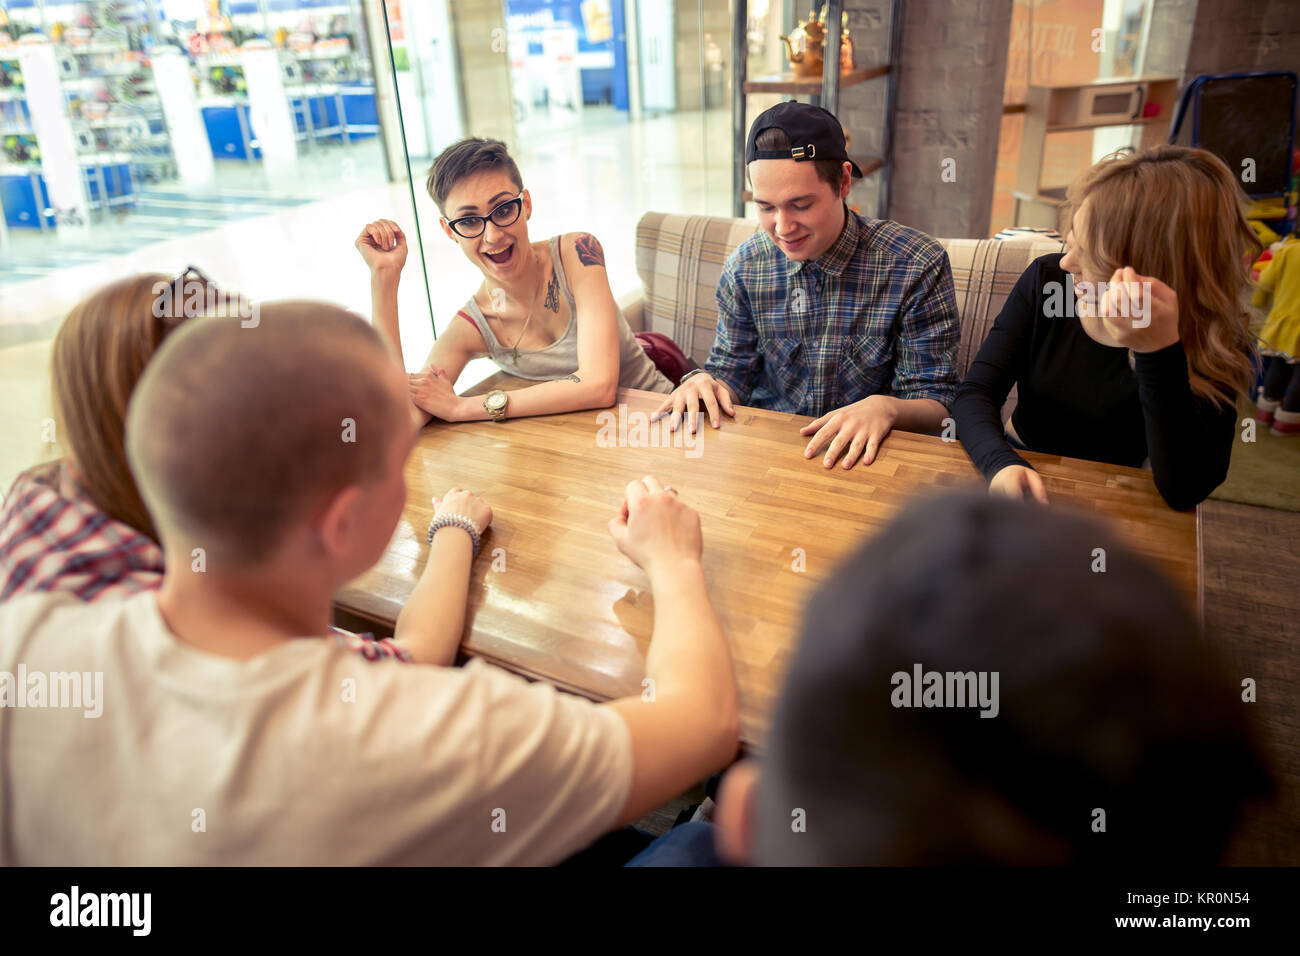 Groupe d'étudiants assis dans un bar-café à l'un l'autre Photo Stock